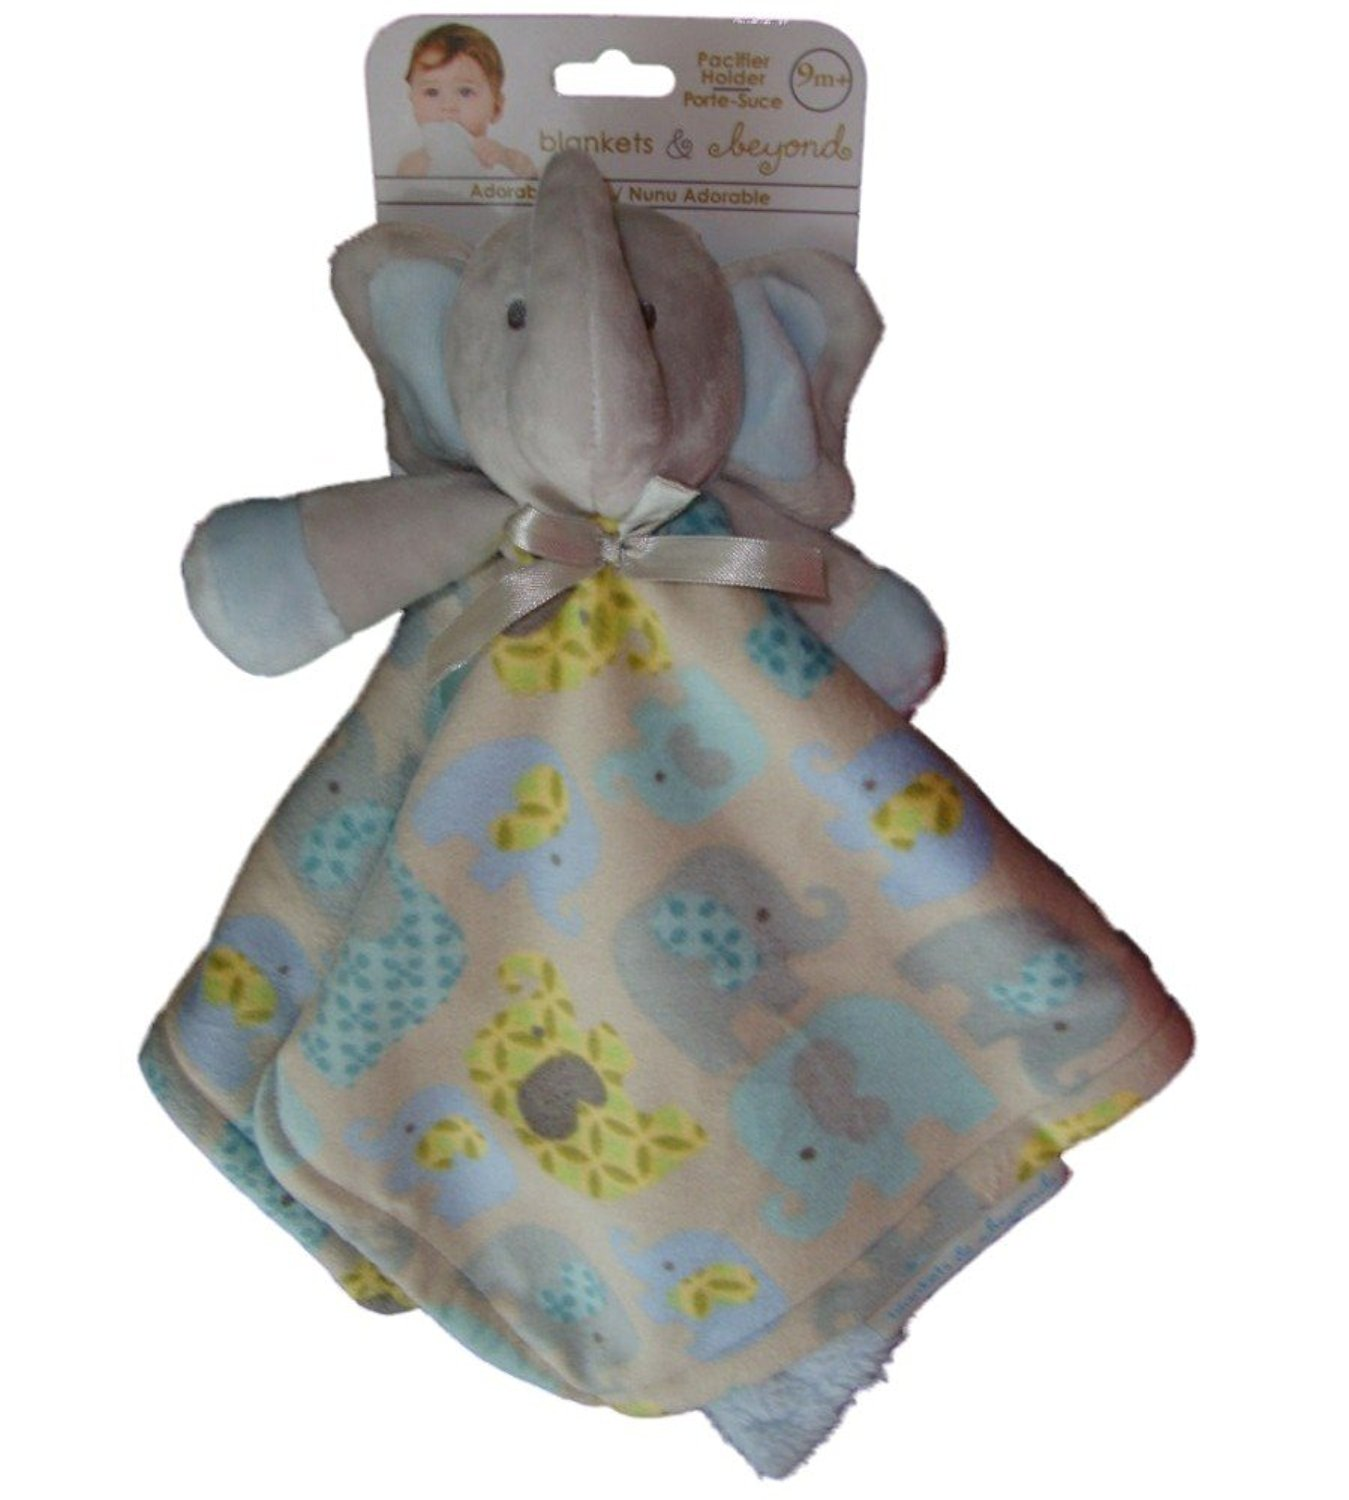 Get Quotations · Blankets   Beyond Baby Boys Blue Grey Elephant Security  Blanket Lovey 873a9eeb9